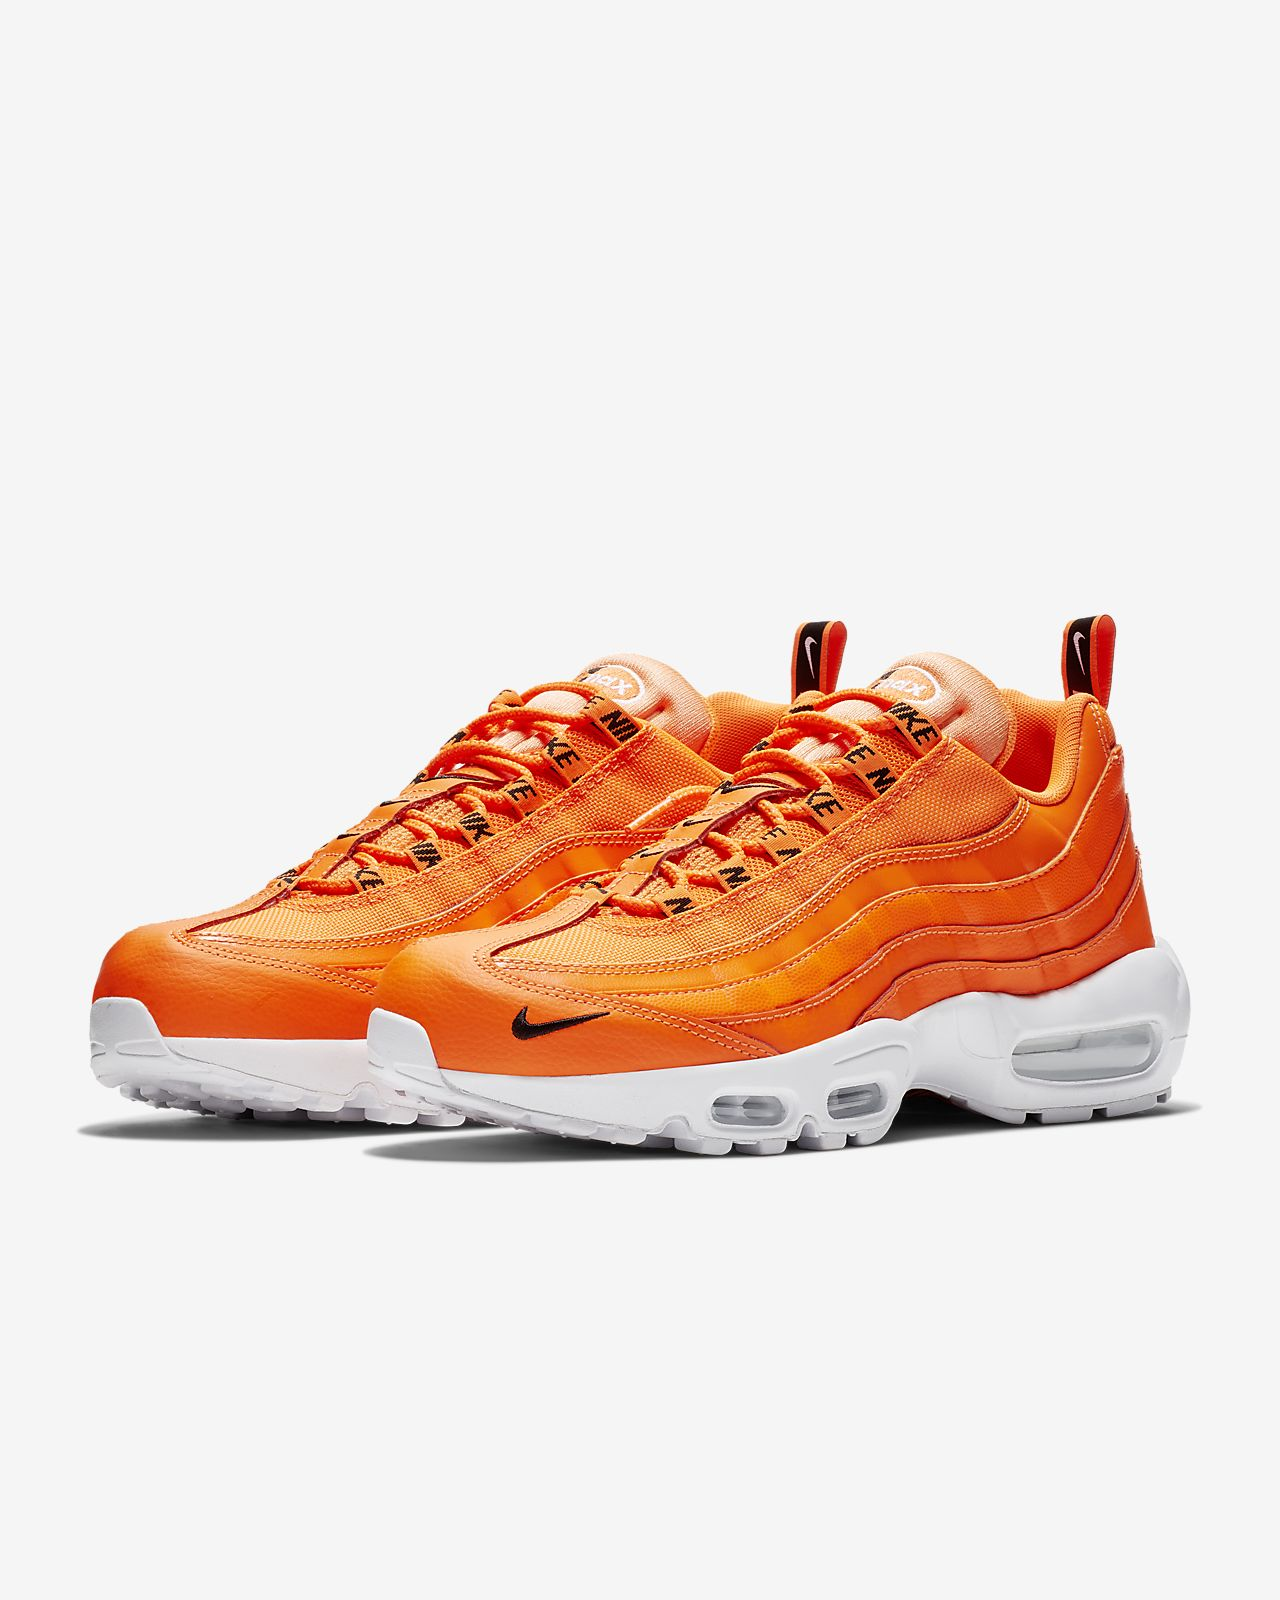 new style 3aeb1 fe2d8 ... Chaussure Nike Air Max 95 Premium pour Homme